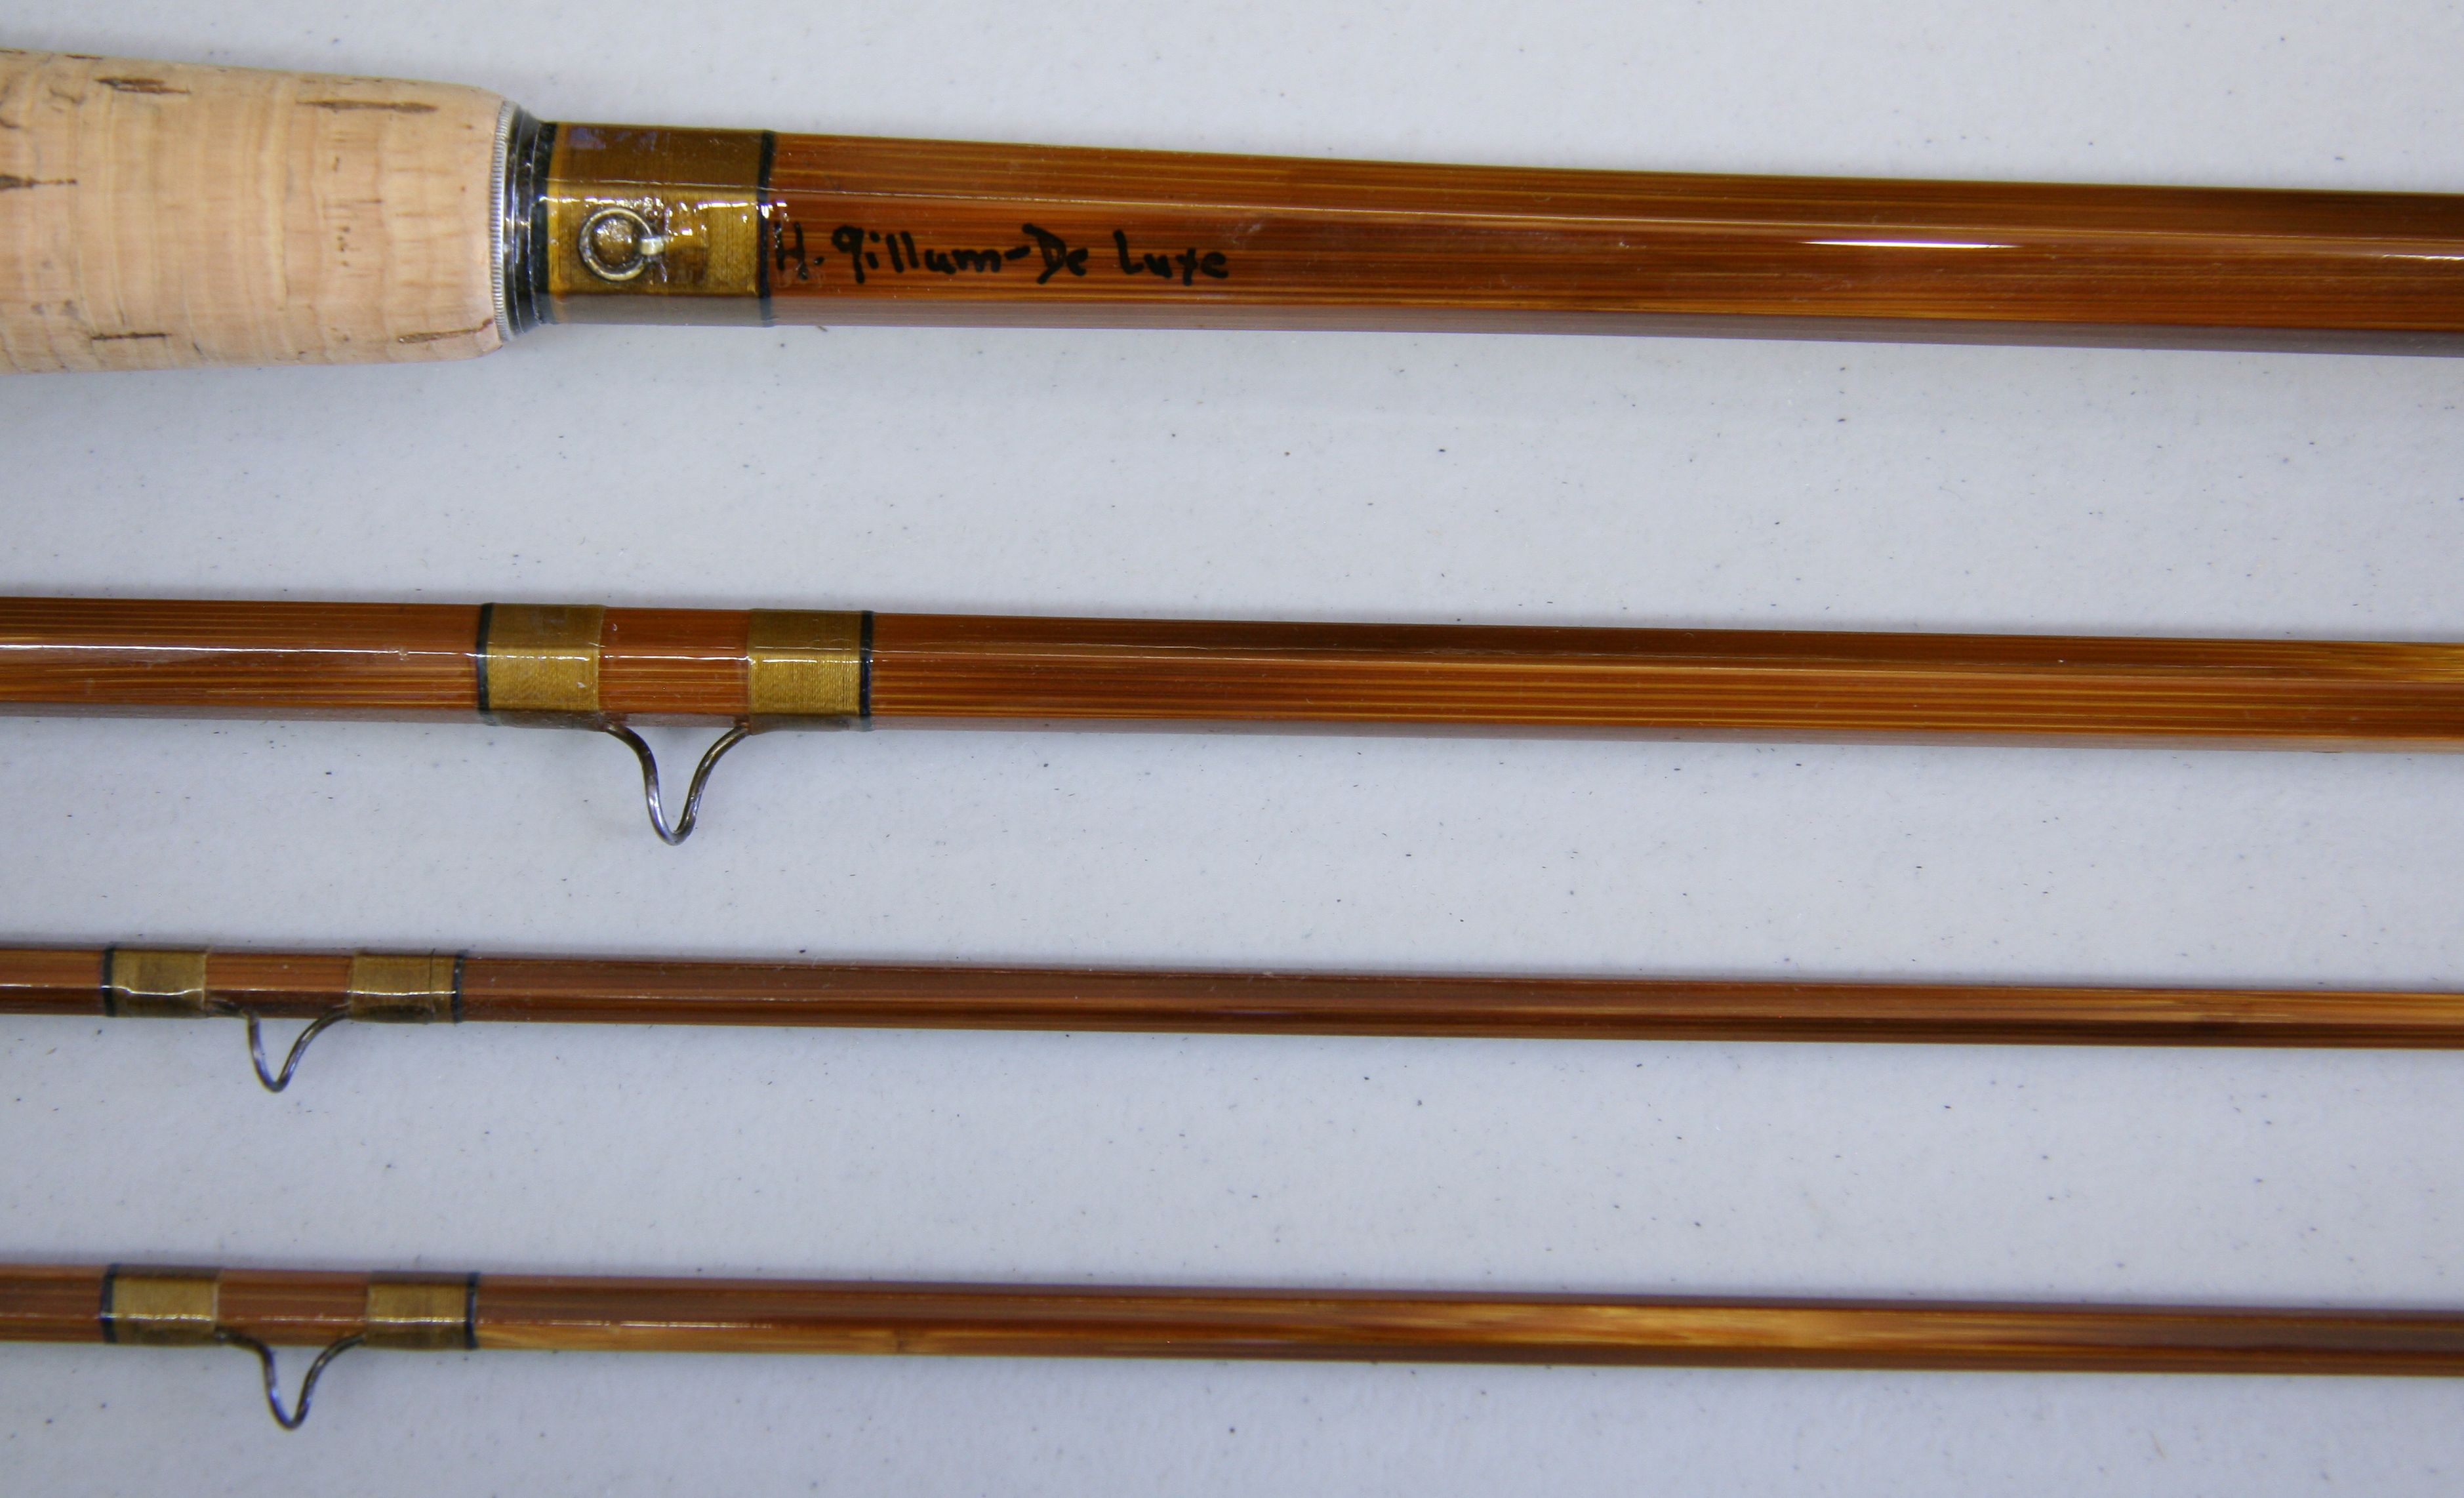 Rick S Rods Fly Fishing Rods Bamboo Rods Bamboo Fly Rod